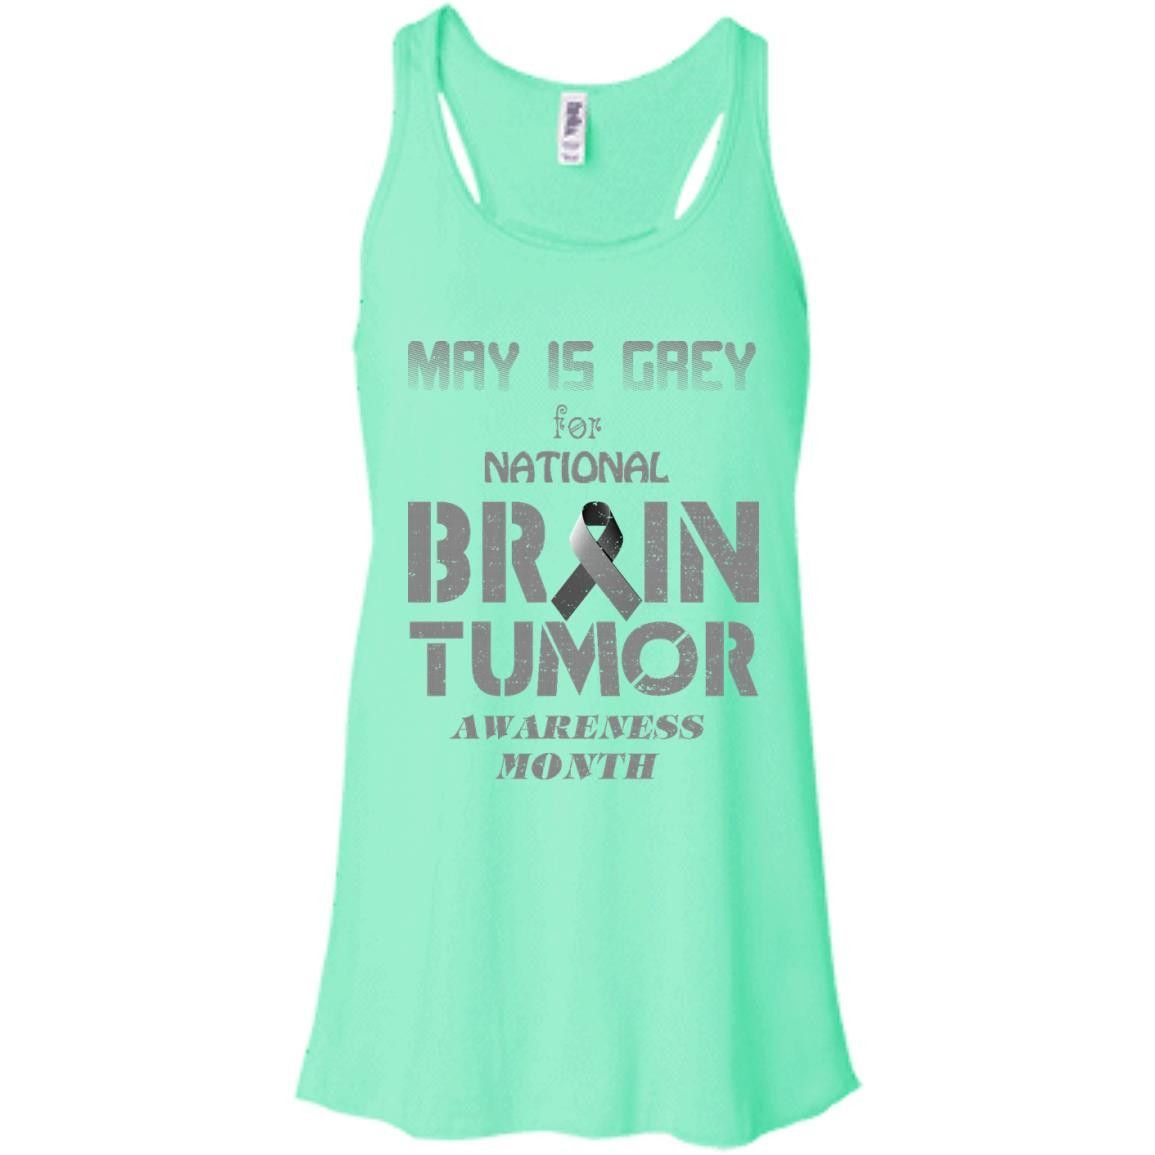 May is gray for national brain tumor awareness month Bella + Canvas Flowy Racerback Tank